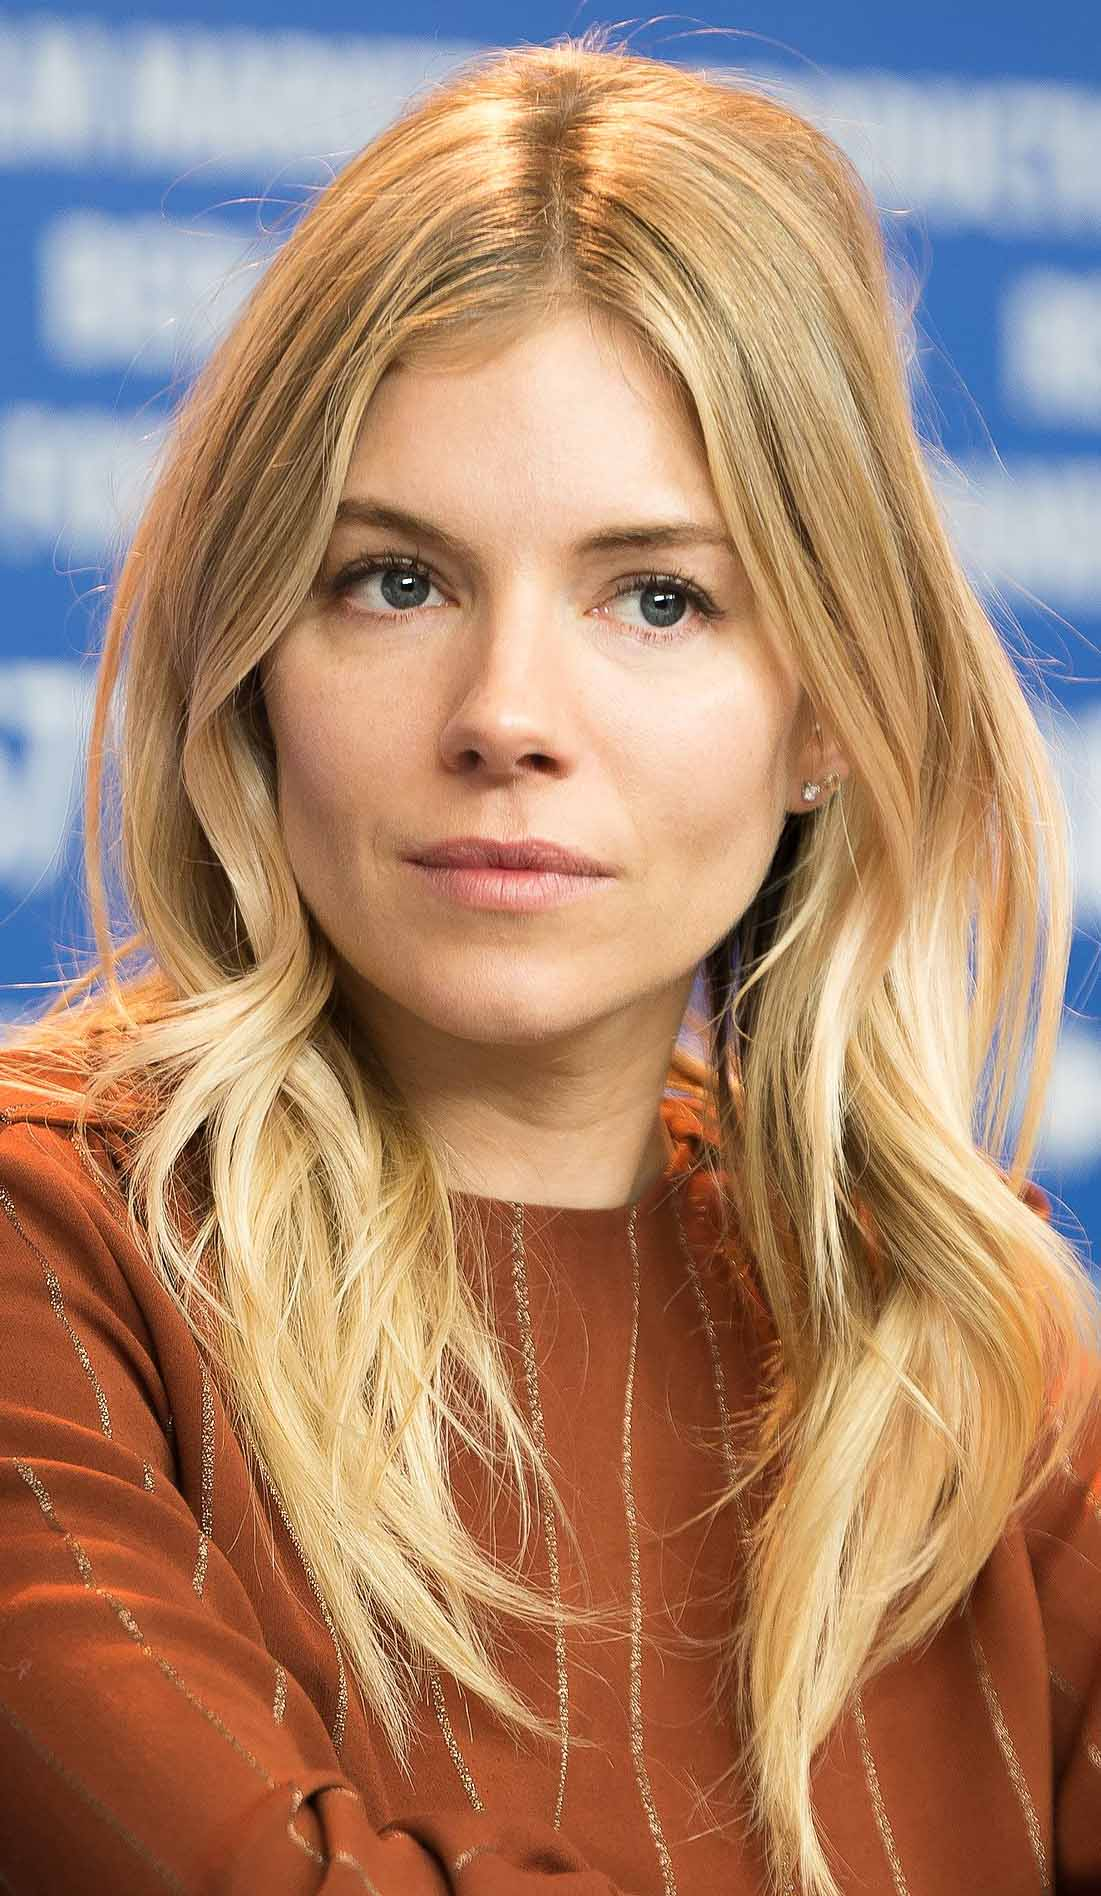 hair-siennamiller-makeup-blonde-long-wavy-layers-middle-part.jpg